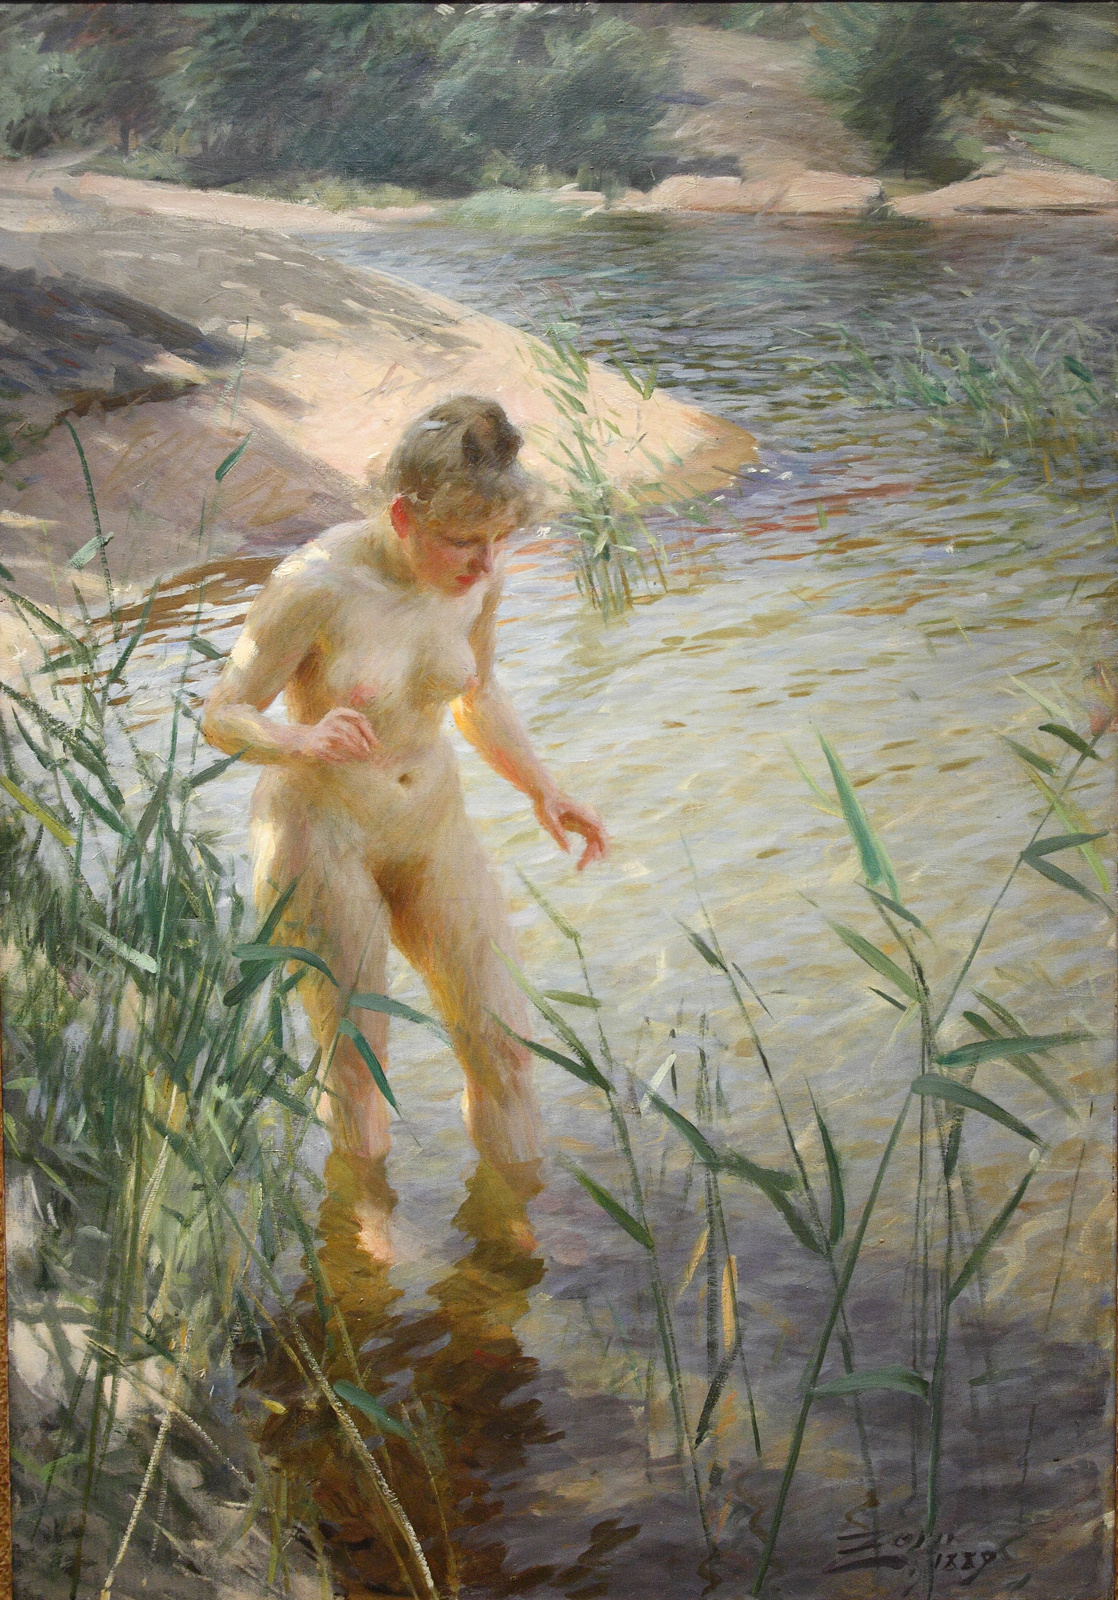 Anders Zorn. Bather